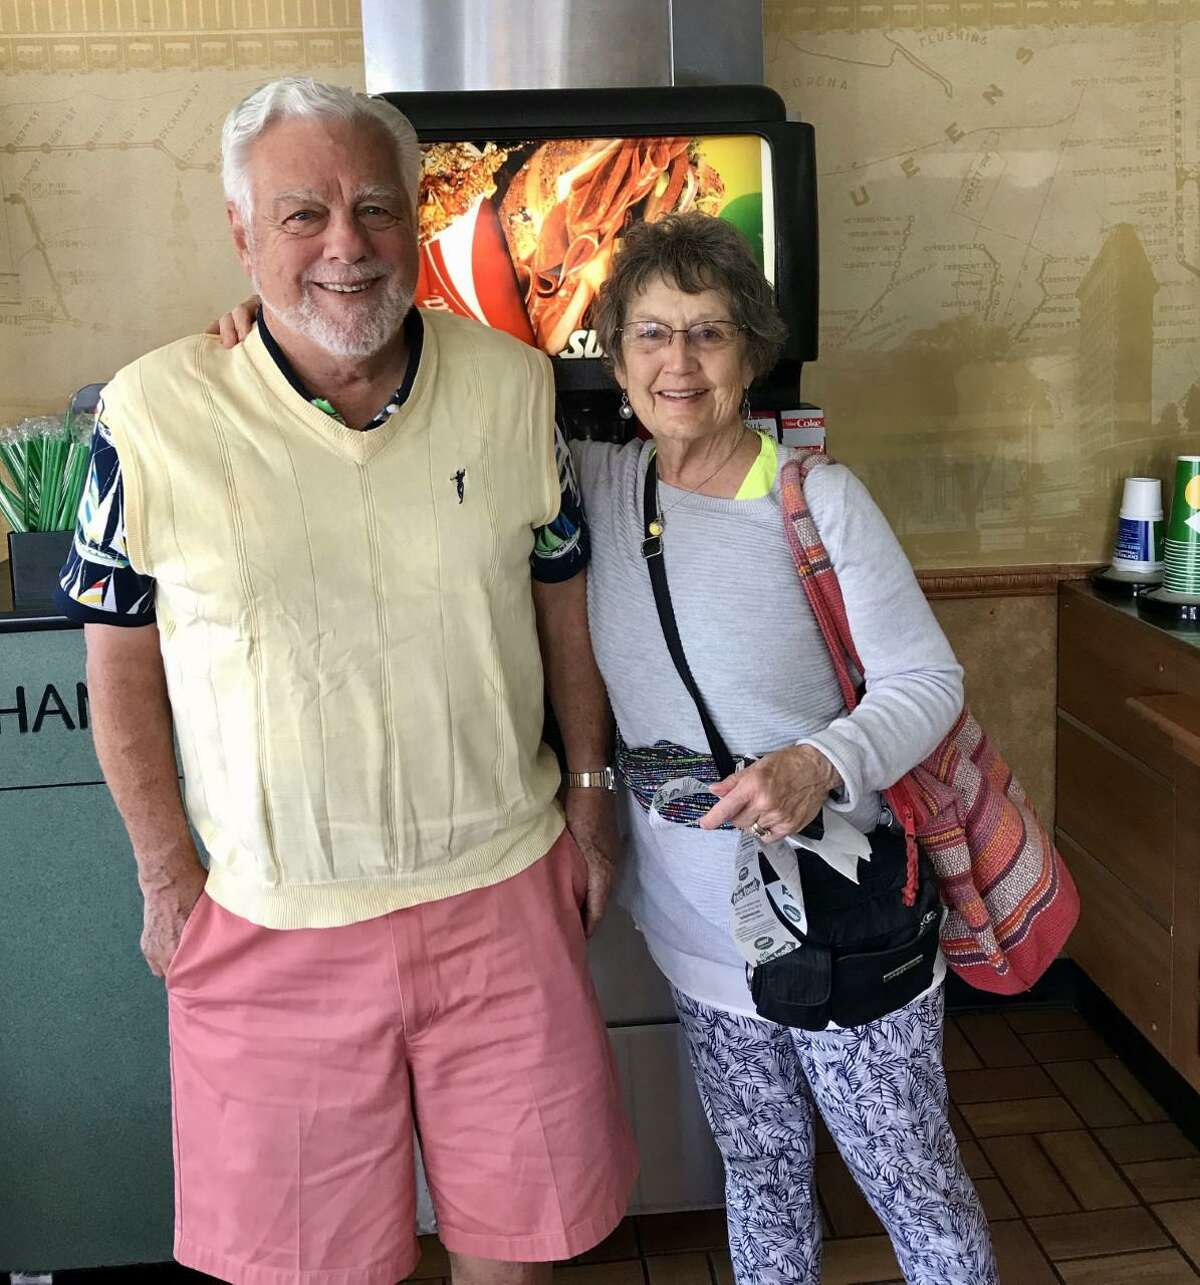 Christine and Dave Cummings, photographed in a Subway restaurant during their cross-country trip in May from California to Connecticut.